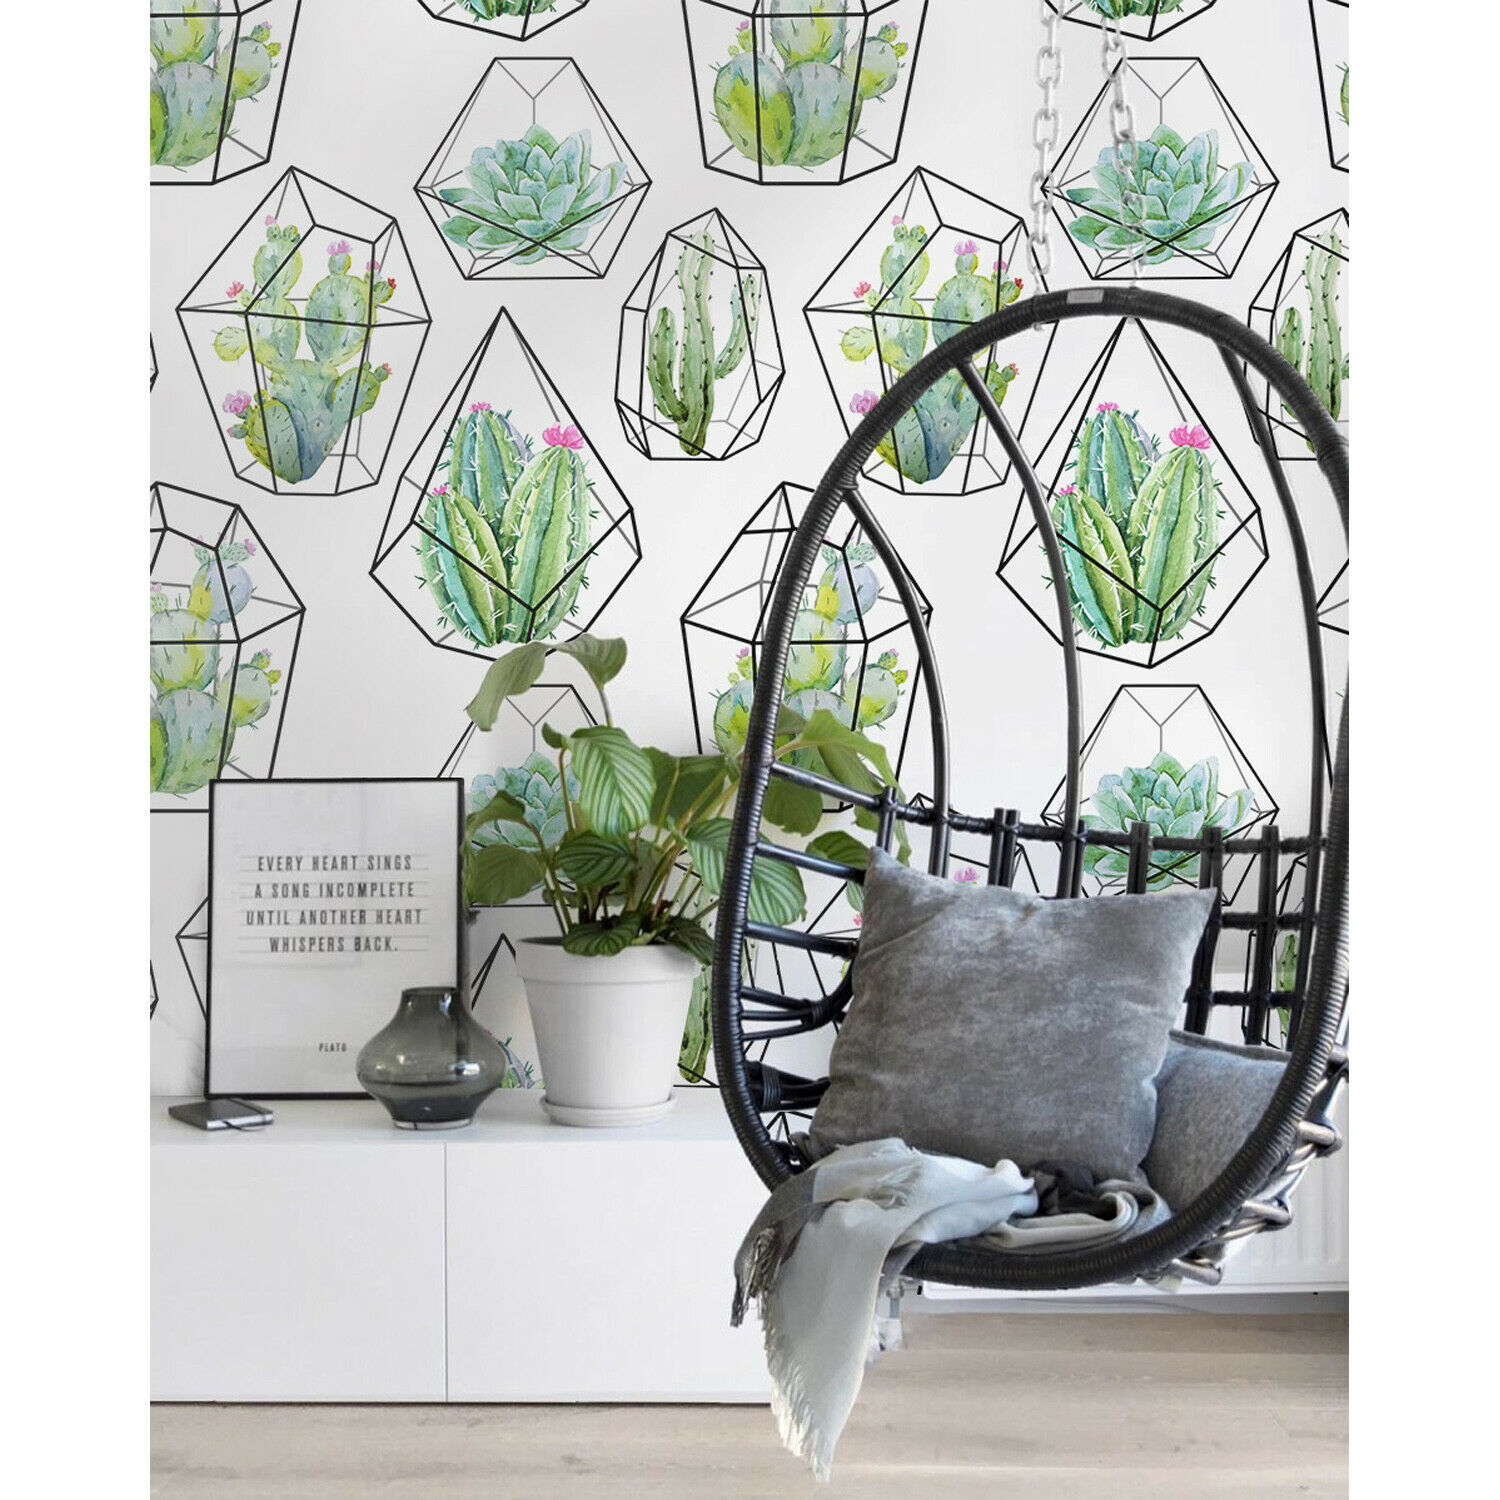 Cactus Cacti Pattern Adhesive removable wallpaper Wall Mural Decal